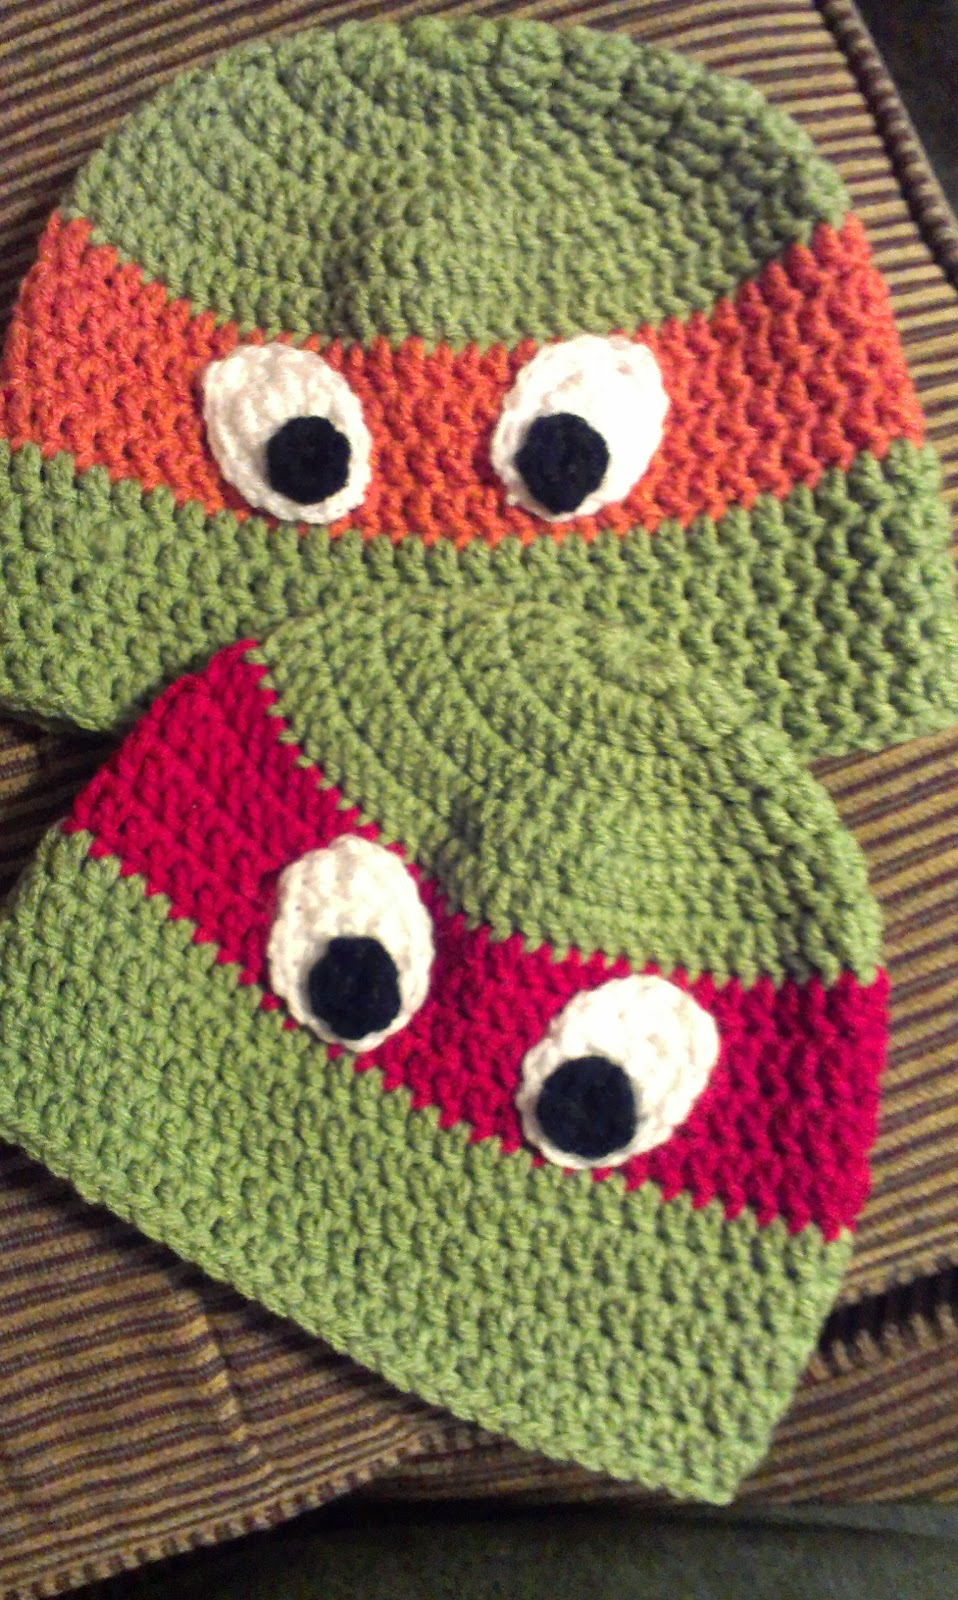 Ninja turtle hat crochet pattern for free crochet kingdom ninja turtle hat pattern bankloansurffo Images